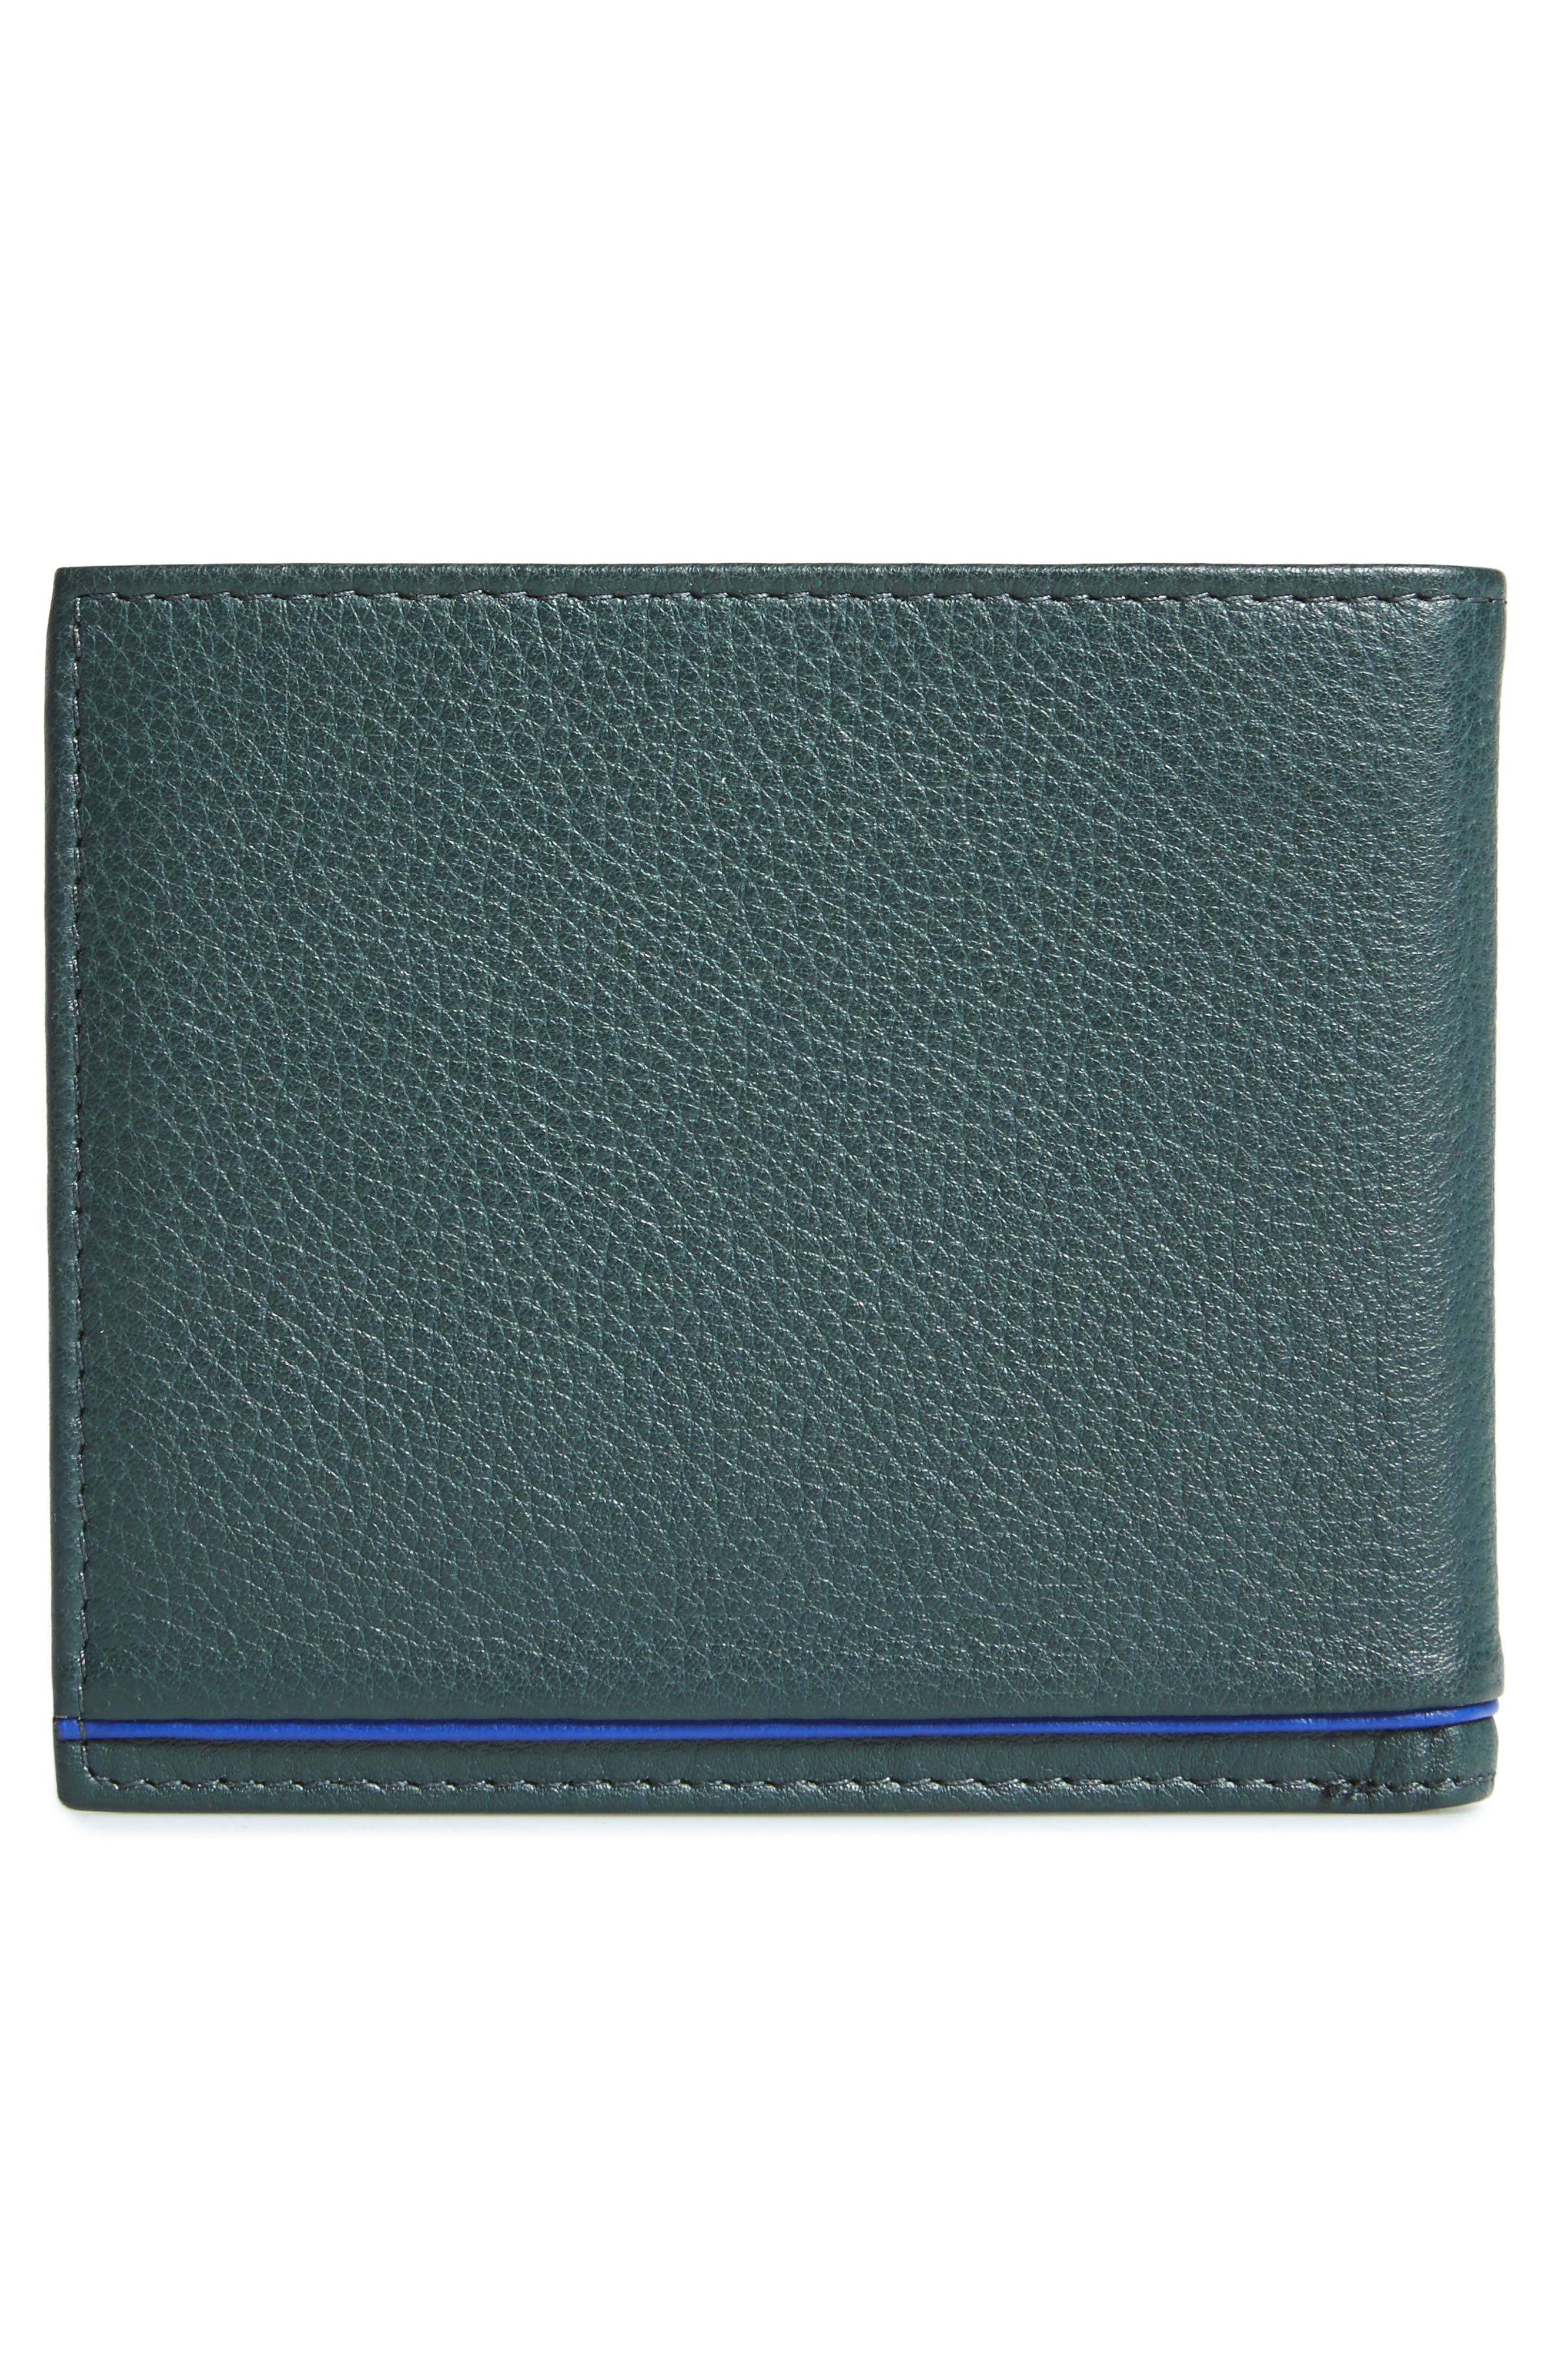 Persia Leather Wallet,                             Alternate thumbnail 3, color,                             Dark Green